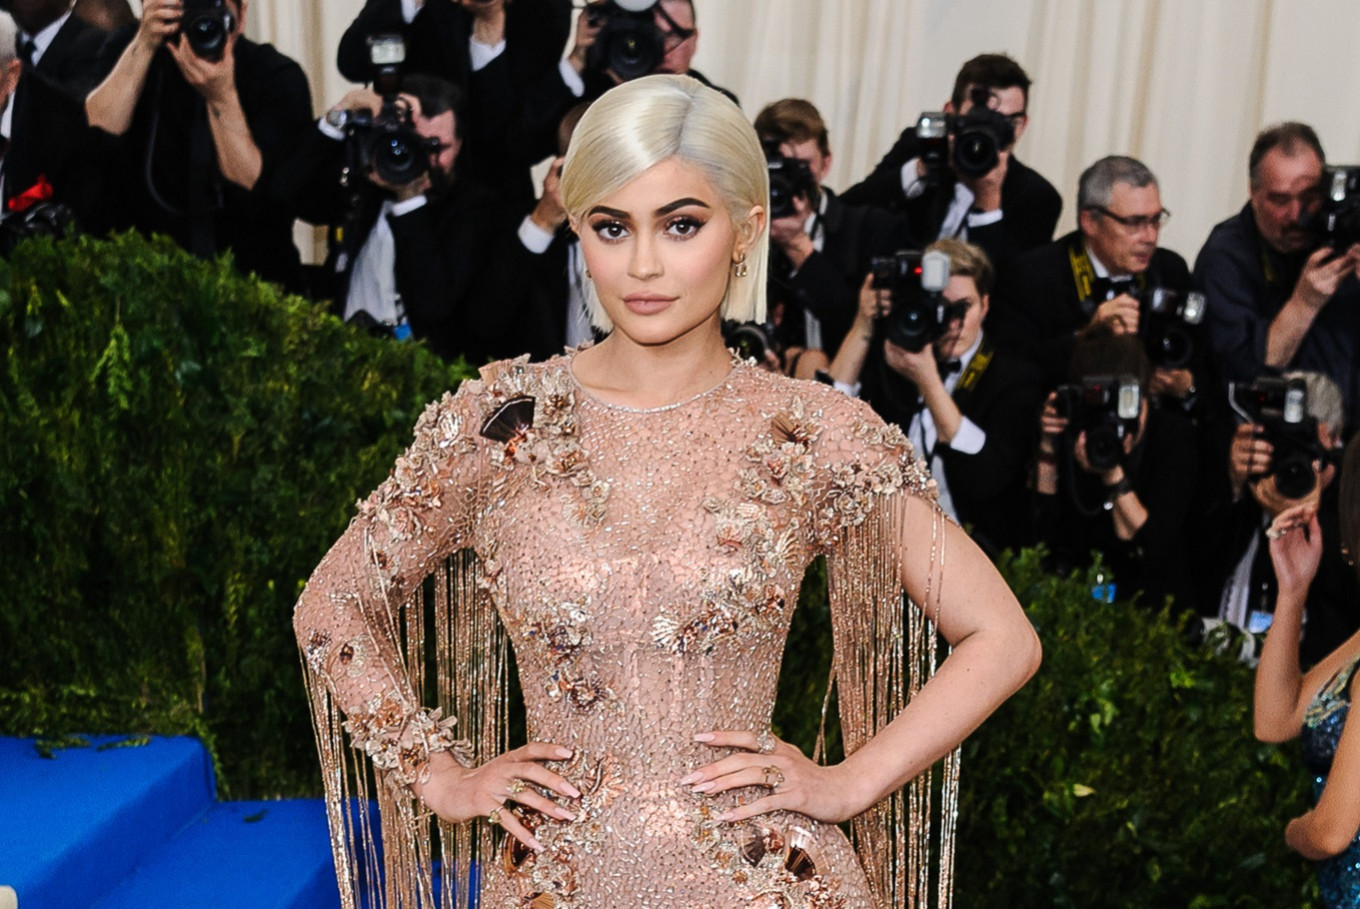 Kylie Jenner Removed from the List of Forbes Billionaires